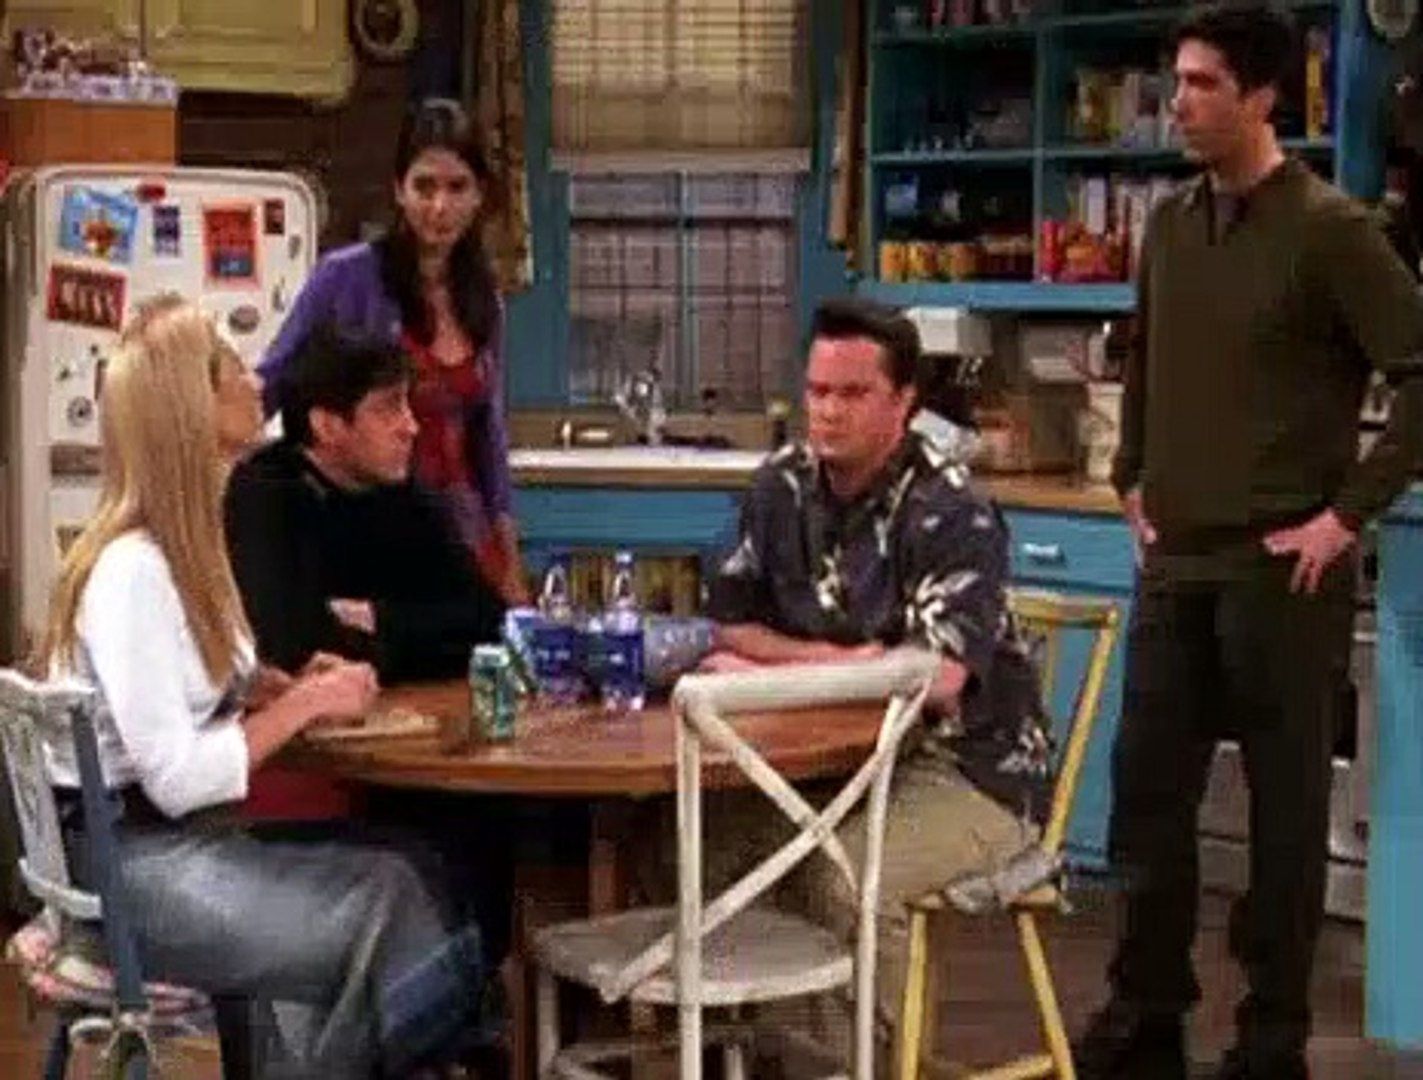 Friends S08E04 The One with the Videotape